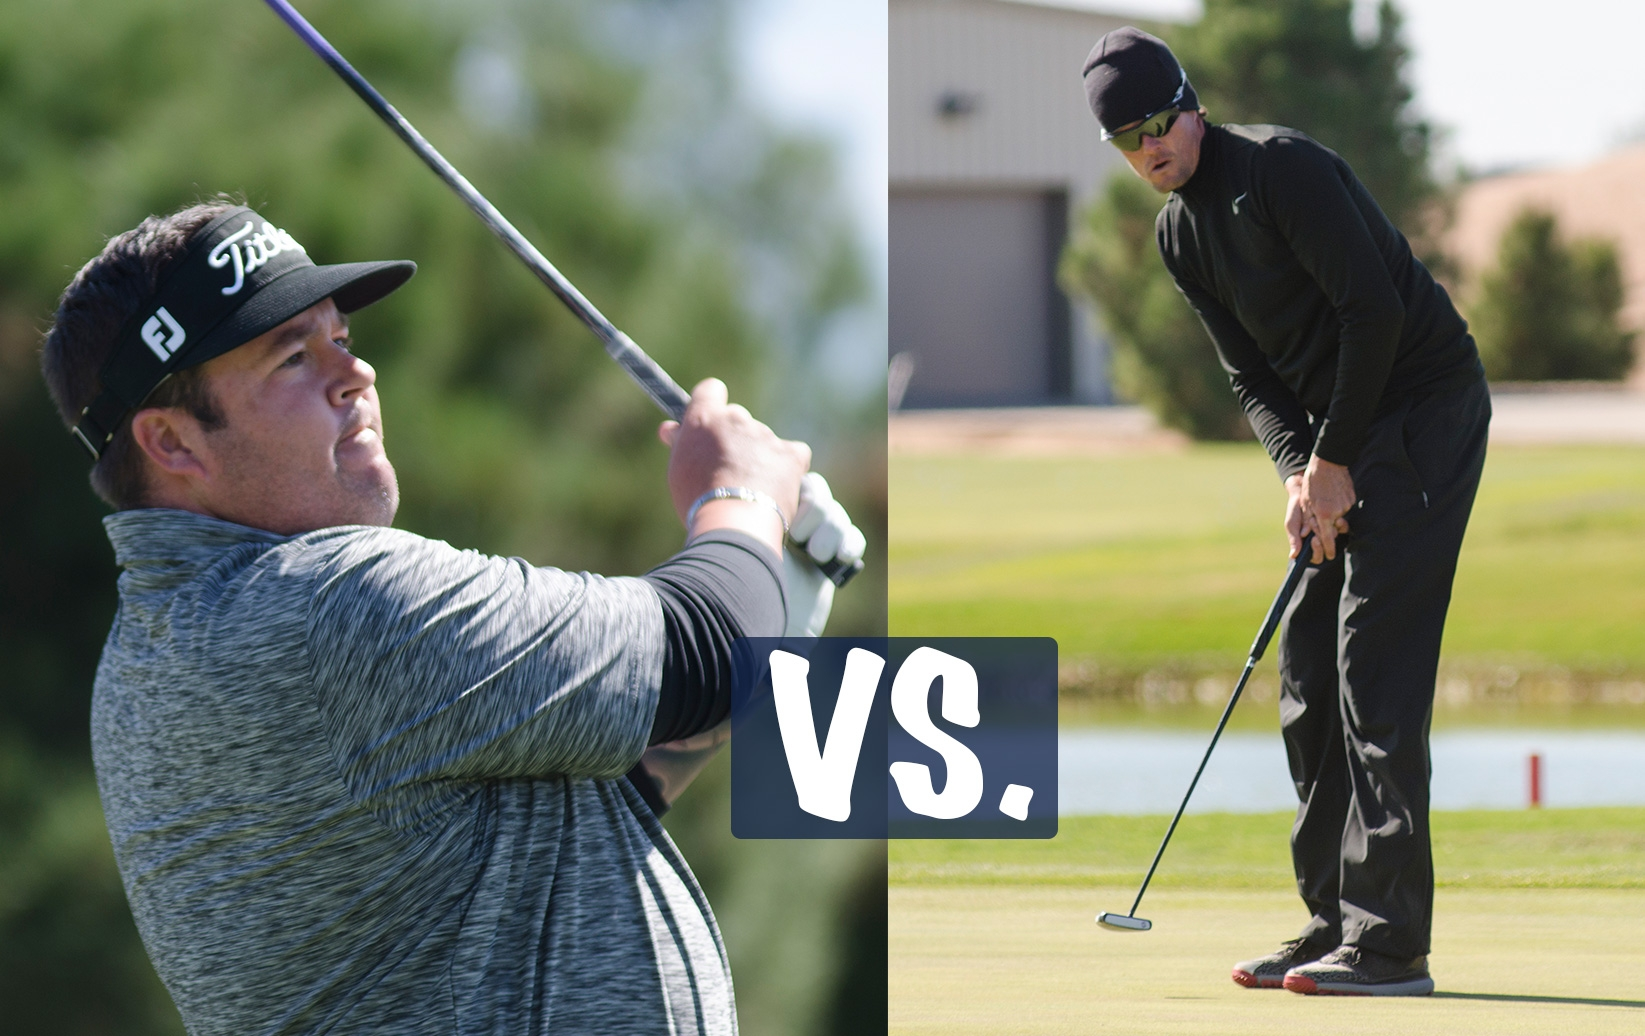 Kern & Coughlan Set to Face Off in Final Match of the Yamaha Golf-Car Company / Lajitas Golf Resort Match Play Championship, Smith Claims Senior...